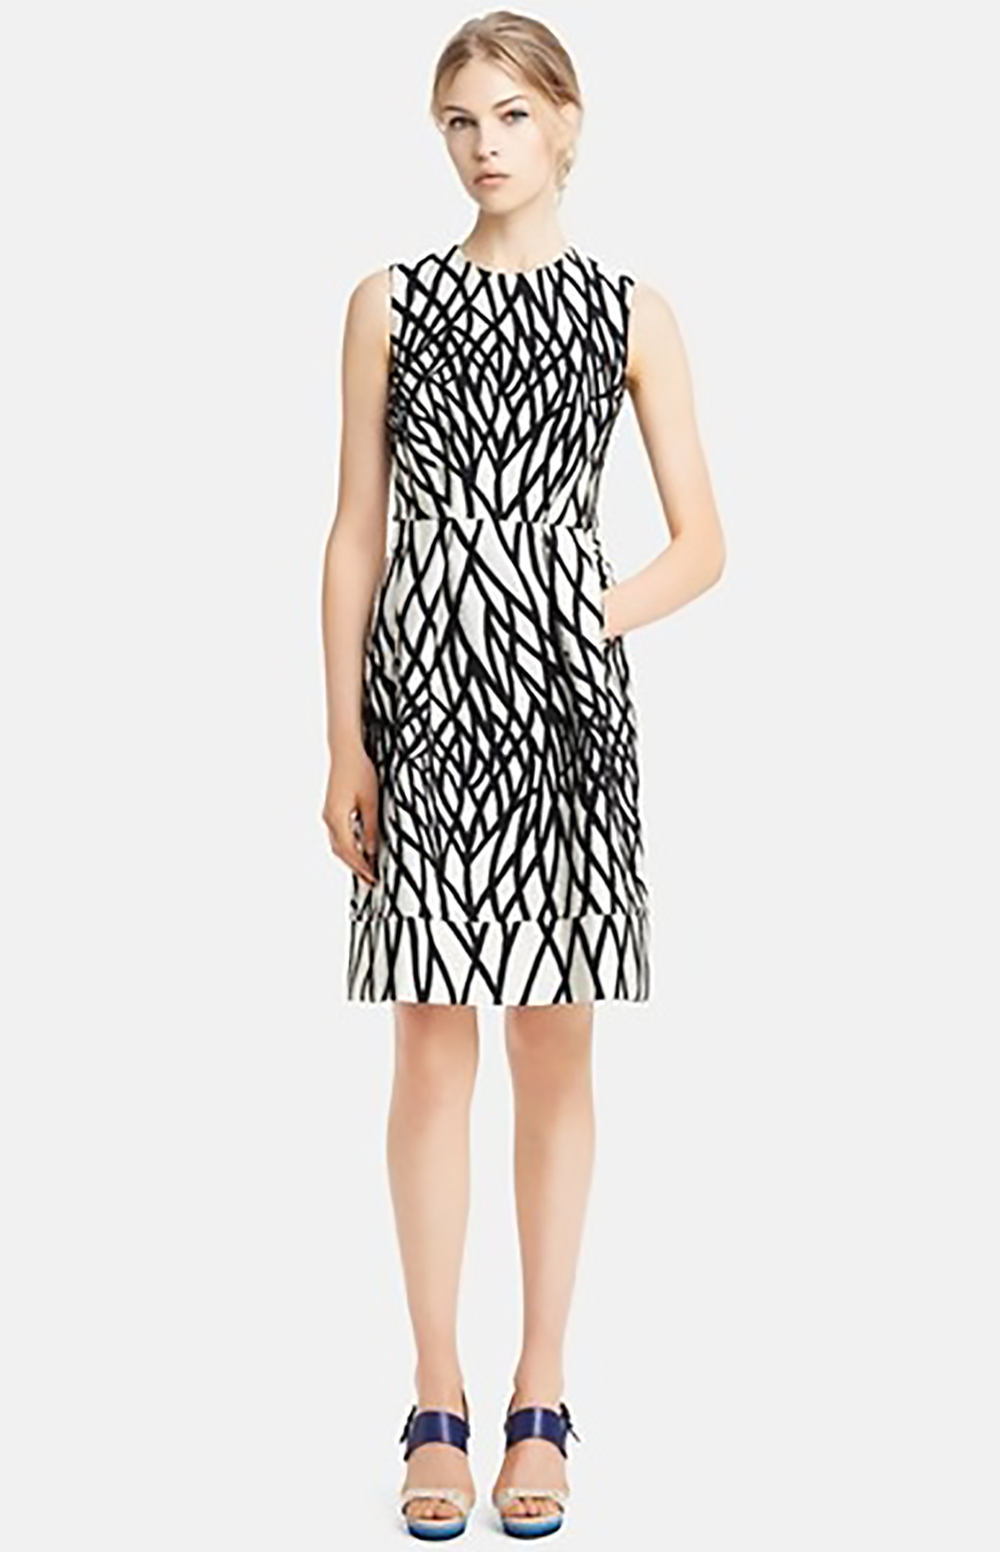 nordstrom marni jacquard cotton blend dress sheath dress 1500.jpg